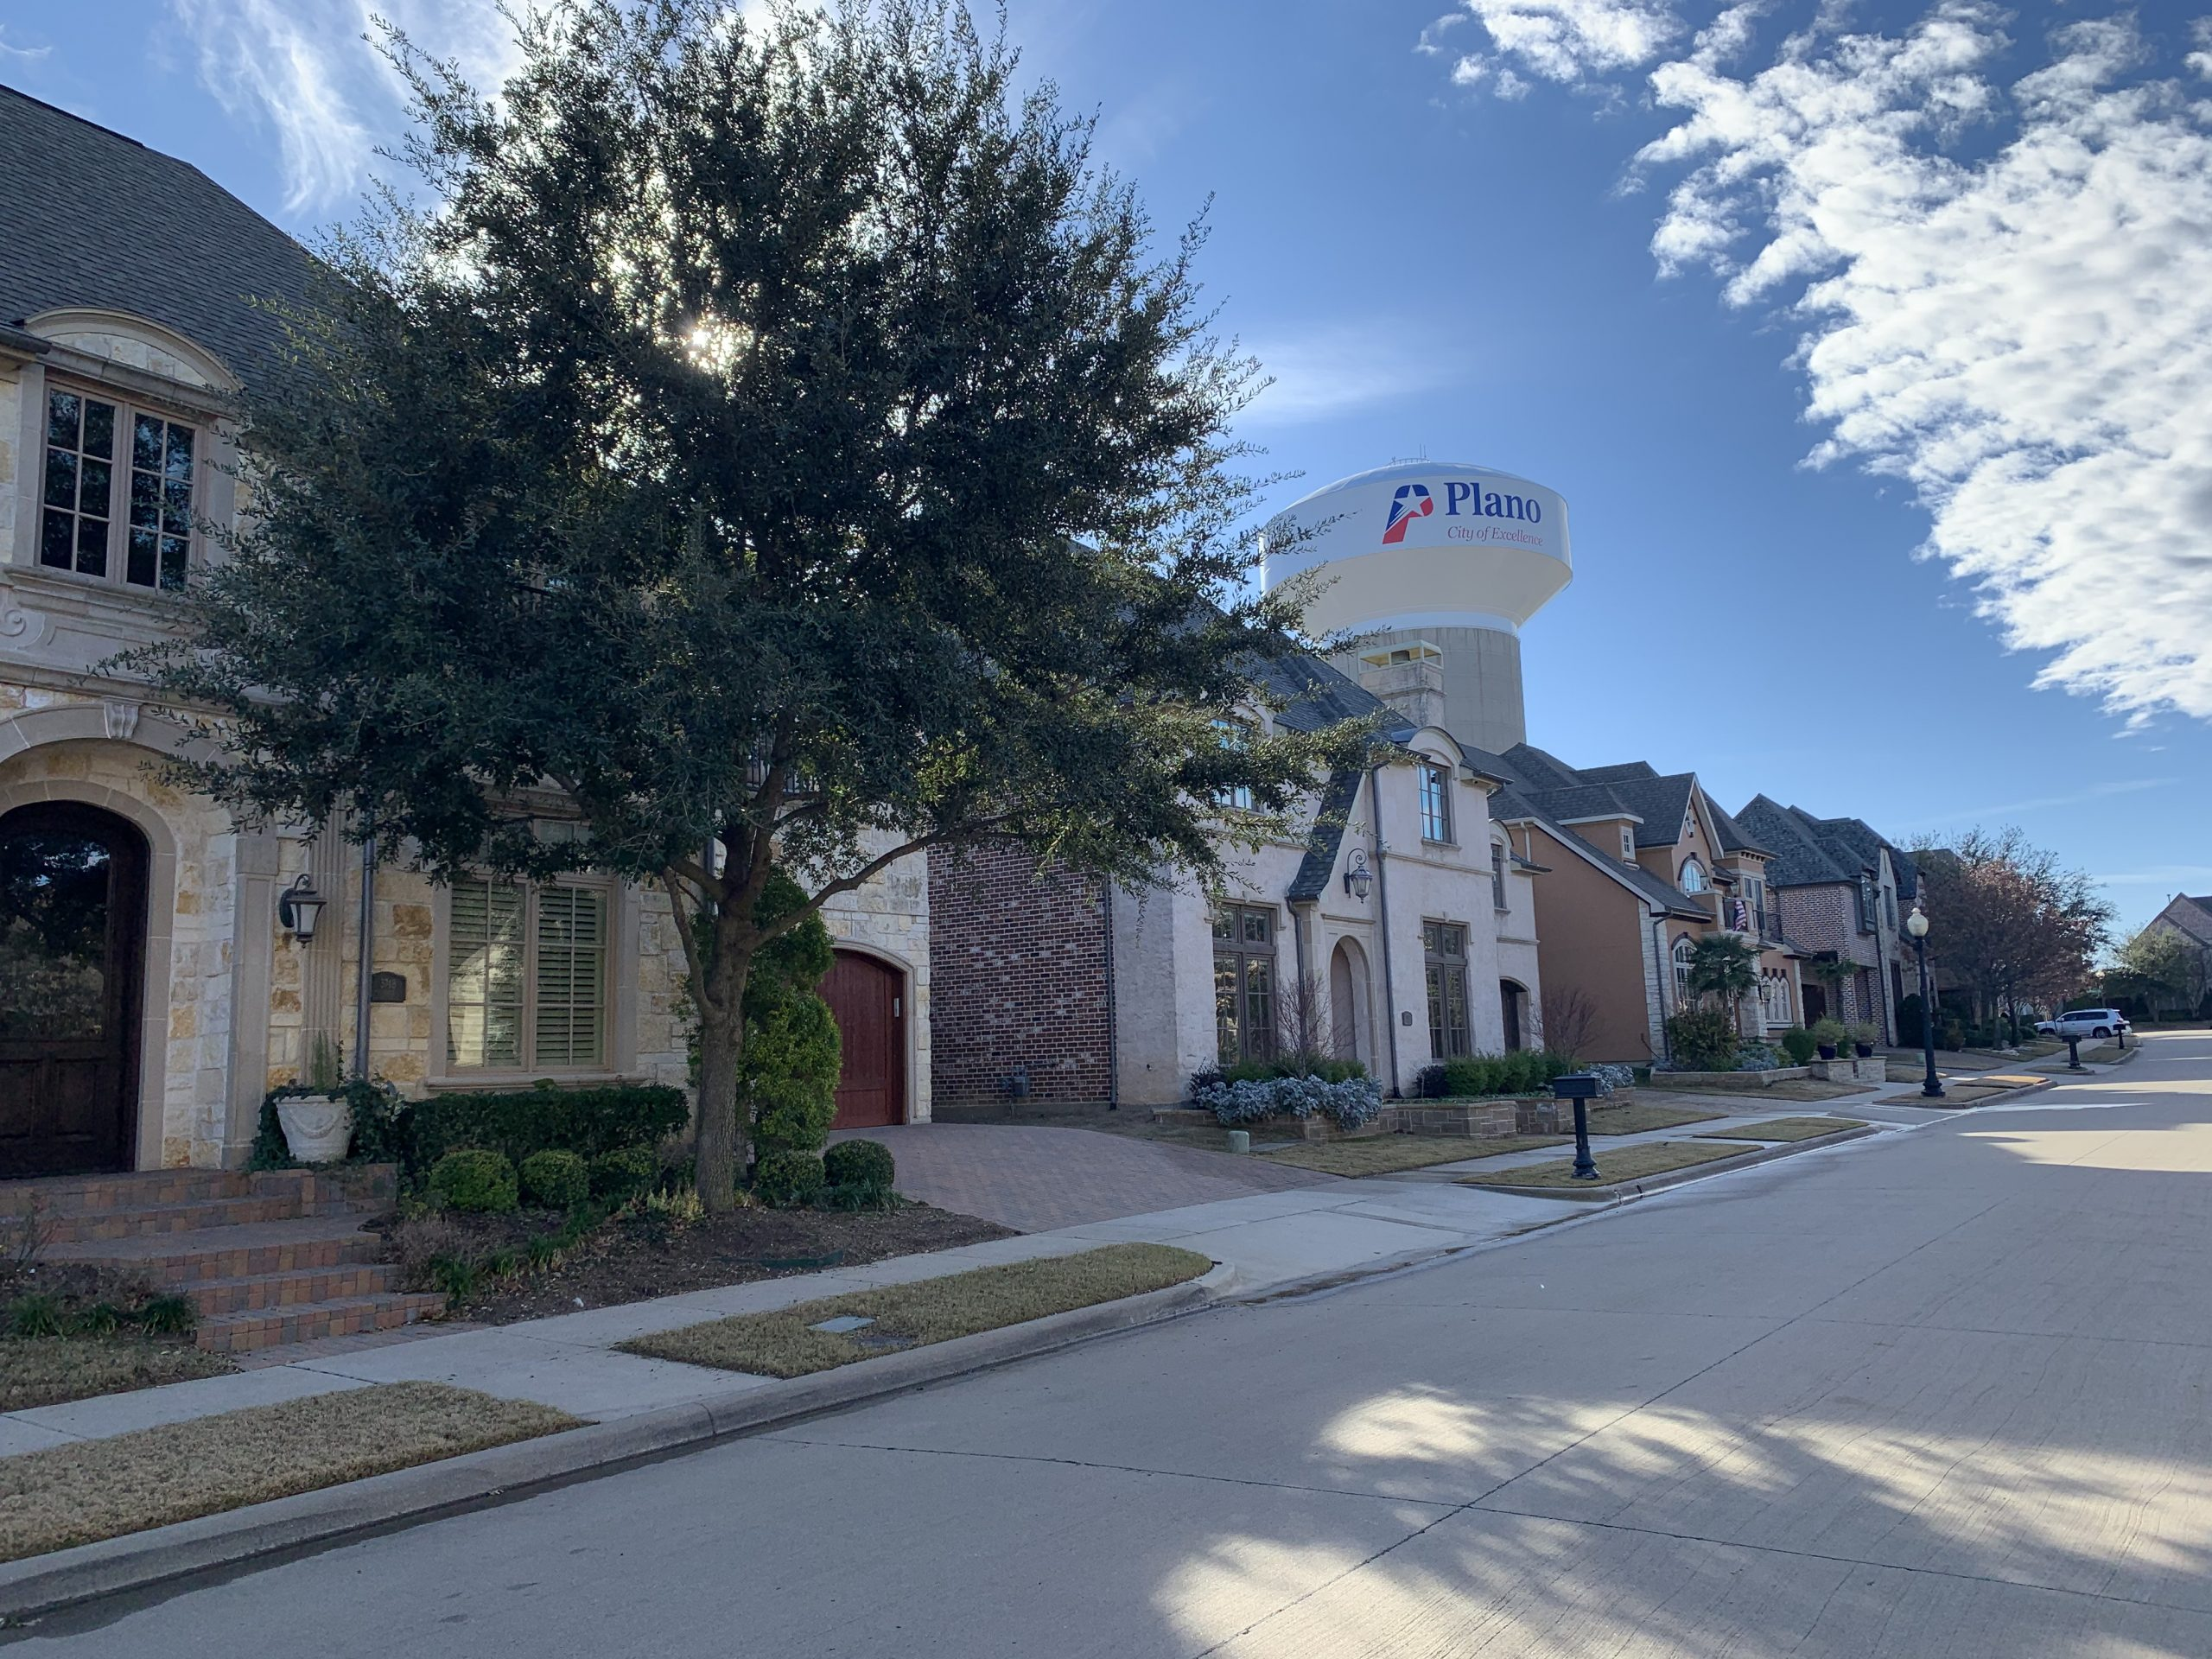 Residential street with houses, a tree, and a Plano water tower in the background.